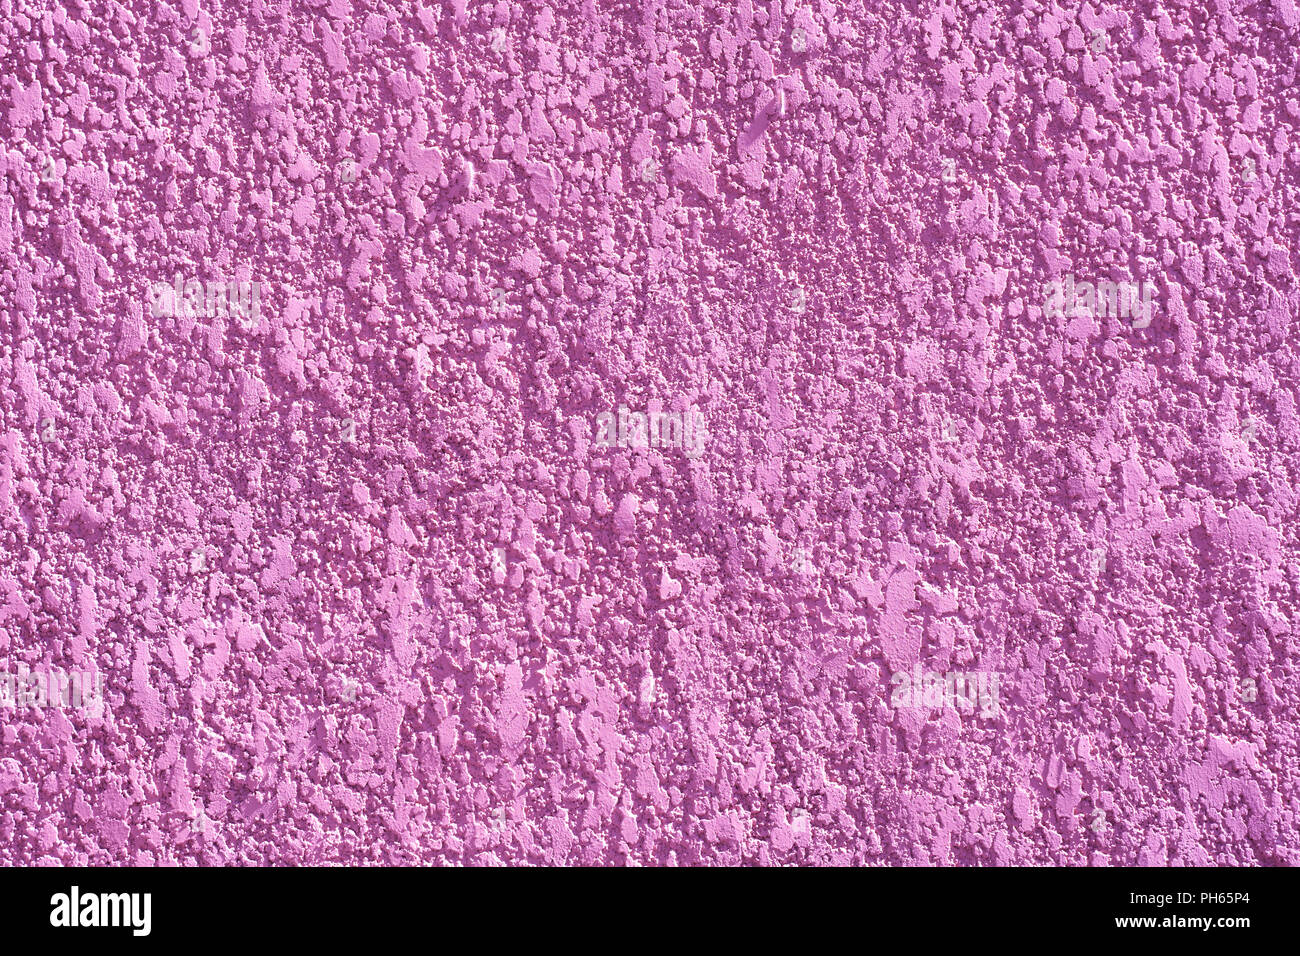 Scabrous textured pink background. Bright background. Close-up - Stock Image